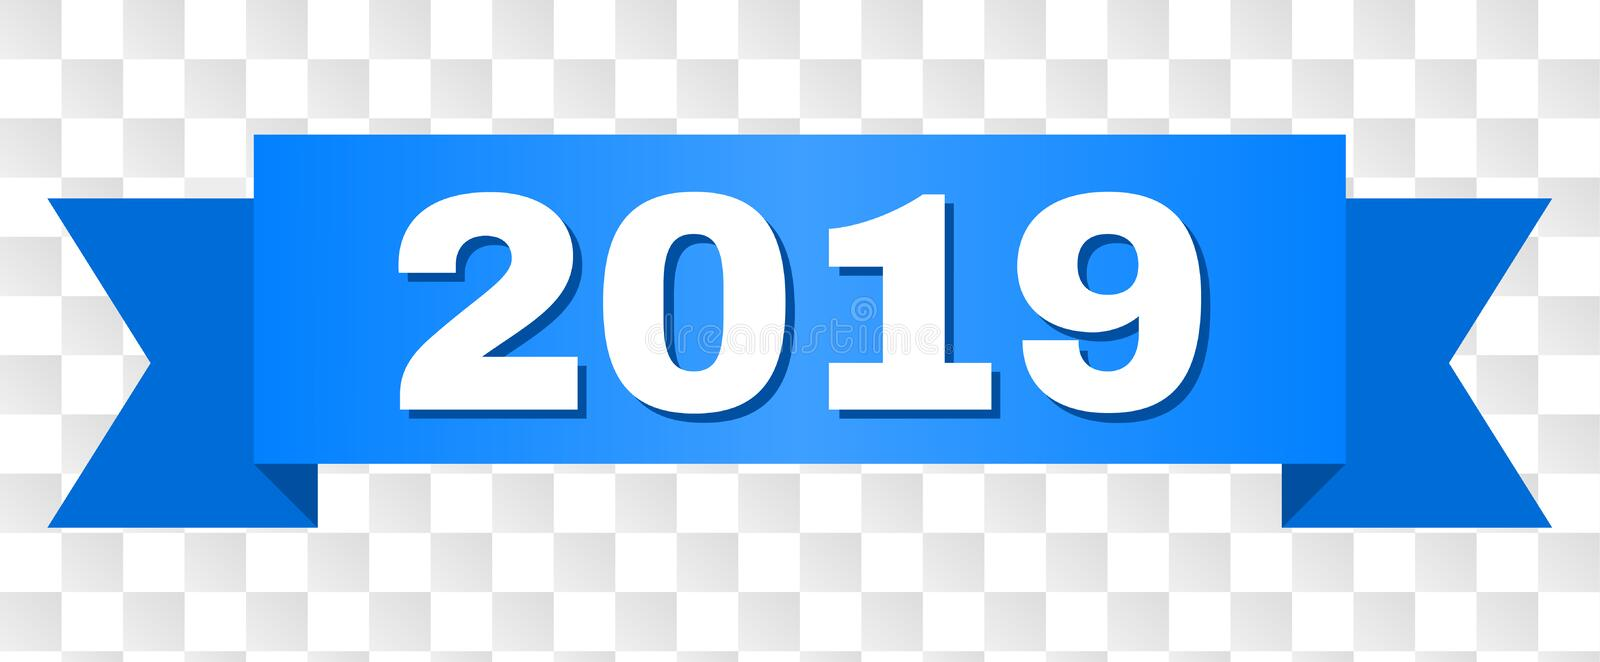 Blue Ribbon with 2019 Text. 2019 text on a ribbon. Designed with white caption and blue tape. Vector banner with 2019 tag on a transparent background royalty free illustration